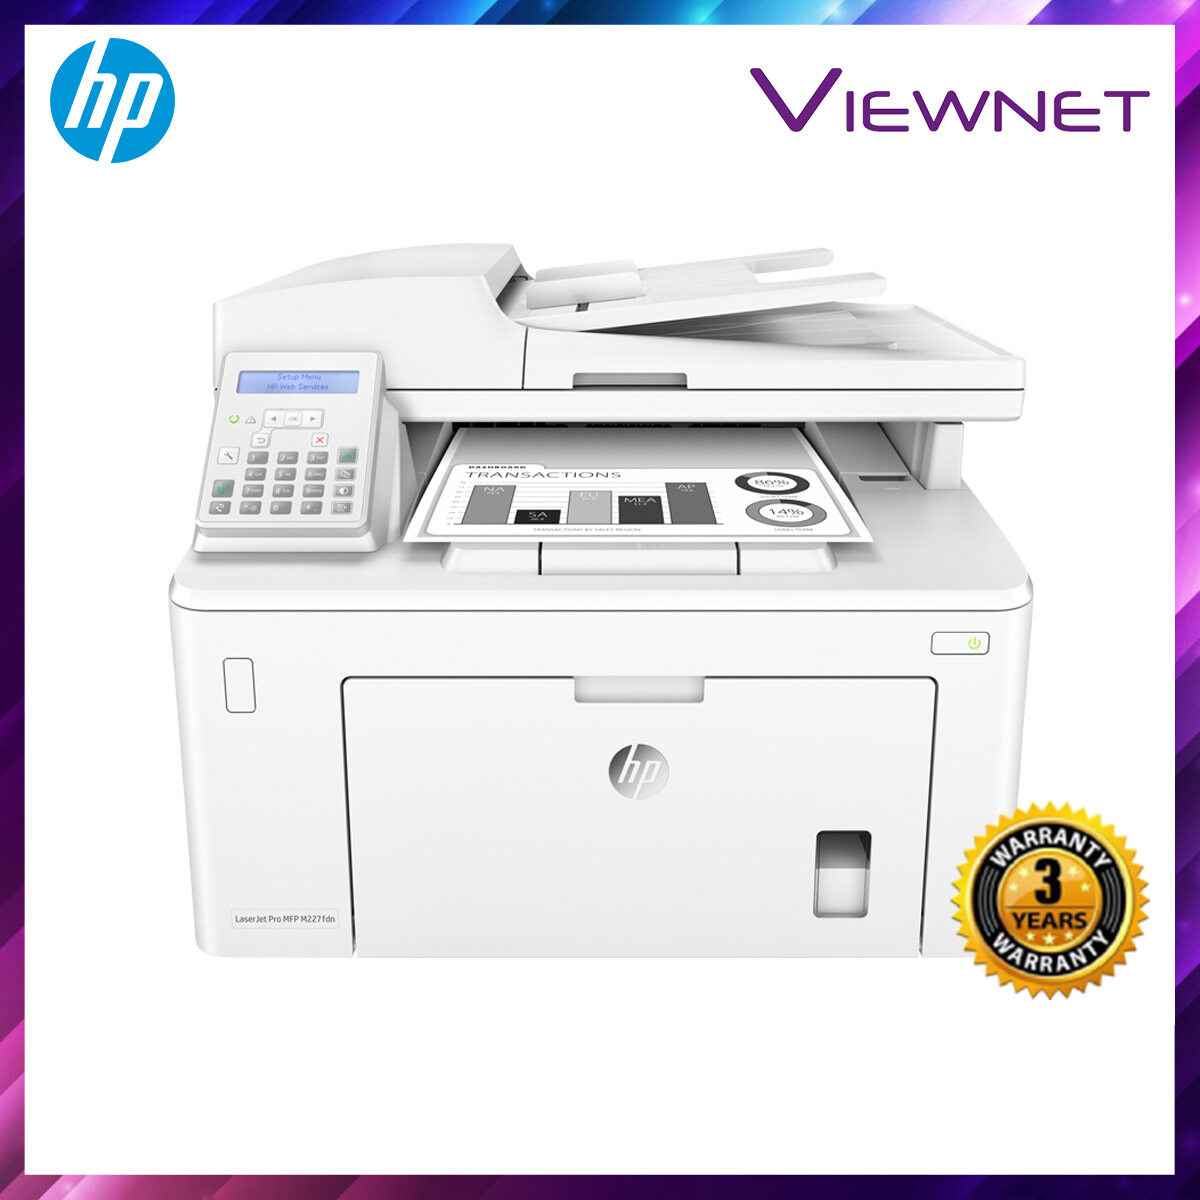 HP LaserJet Pro MFP M227fdn PRINT SCAN COPY FAX NETWORK 3 Years Onsite Warranty with 1-to-1 Unit exchange **NEED TO ONLINE REGISTER**